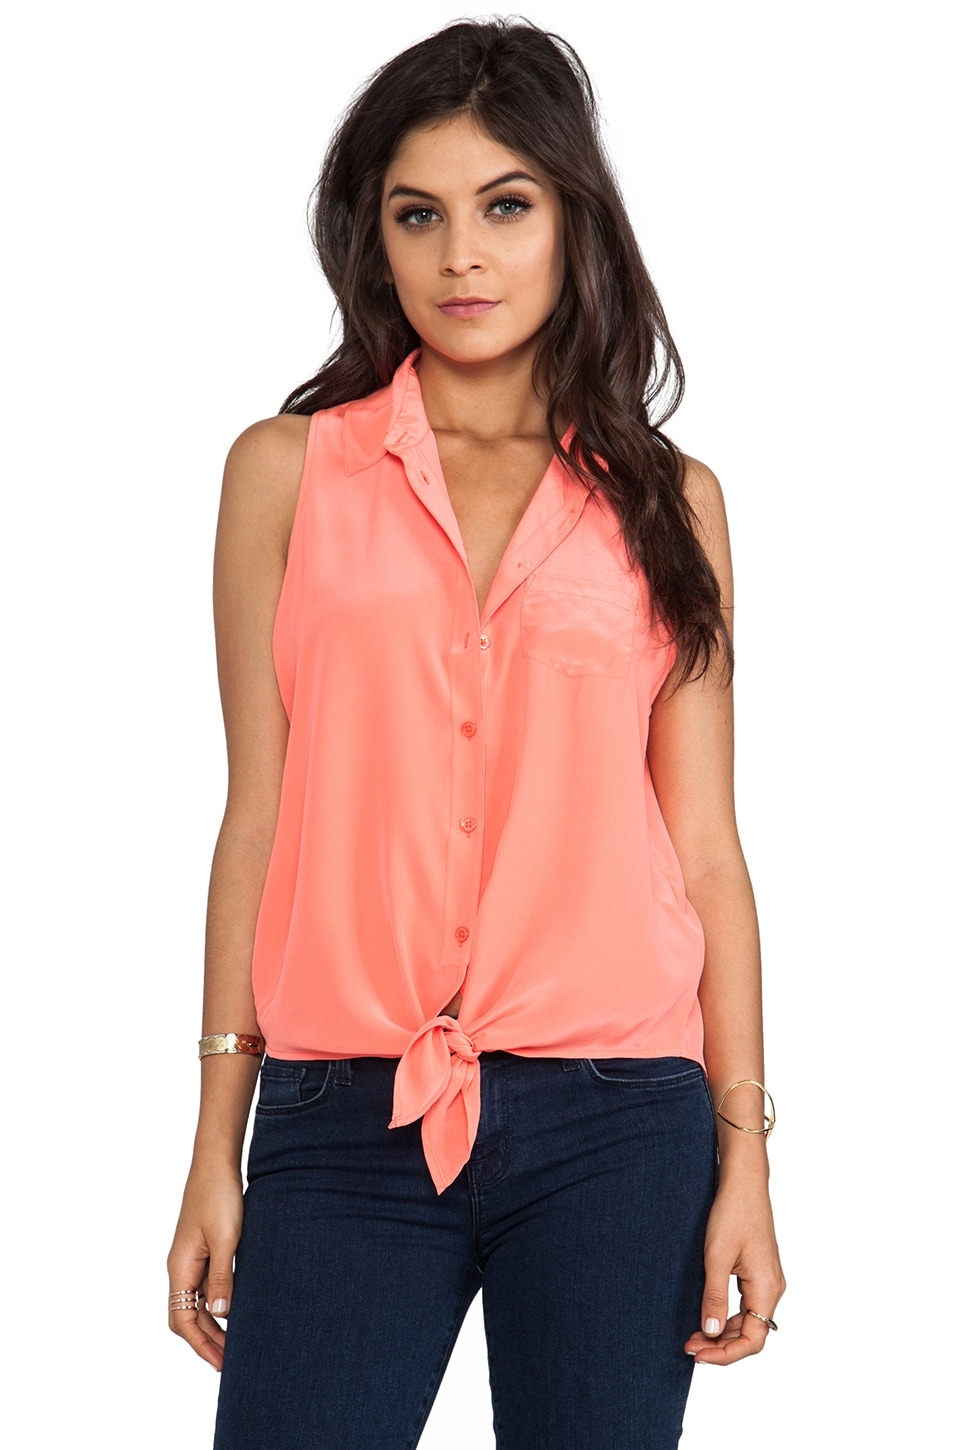 Equipment Mina Sleeveless Tie Front Blouse in Neon Orange